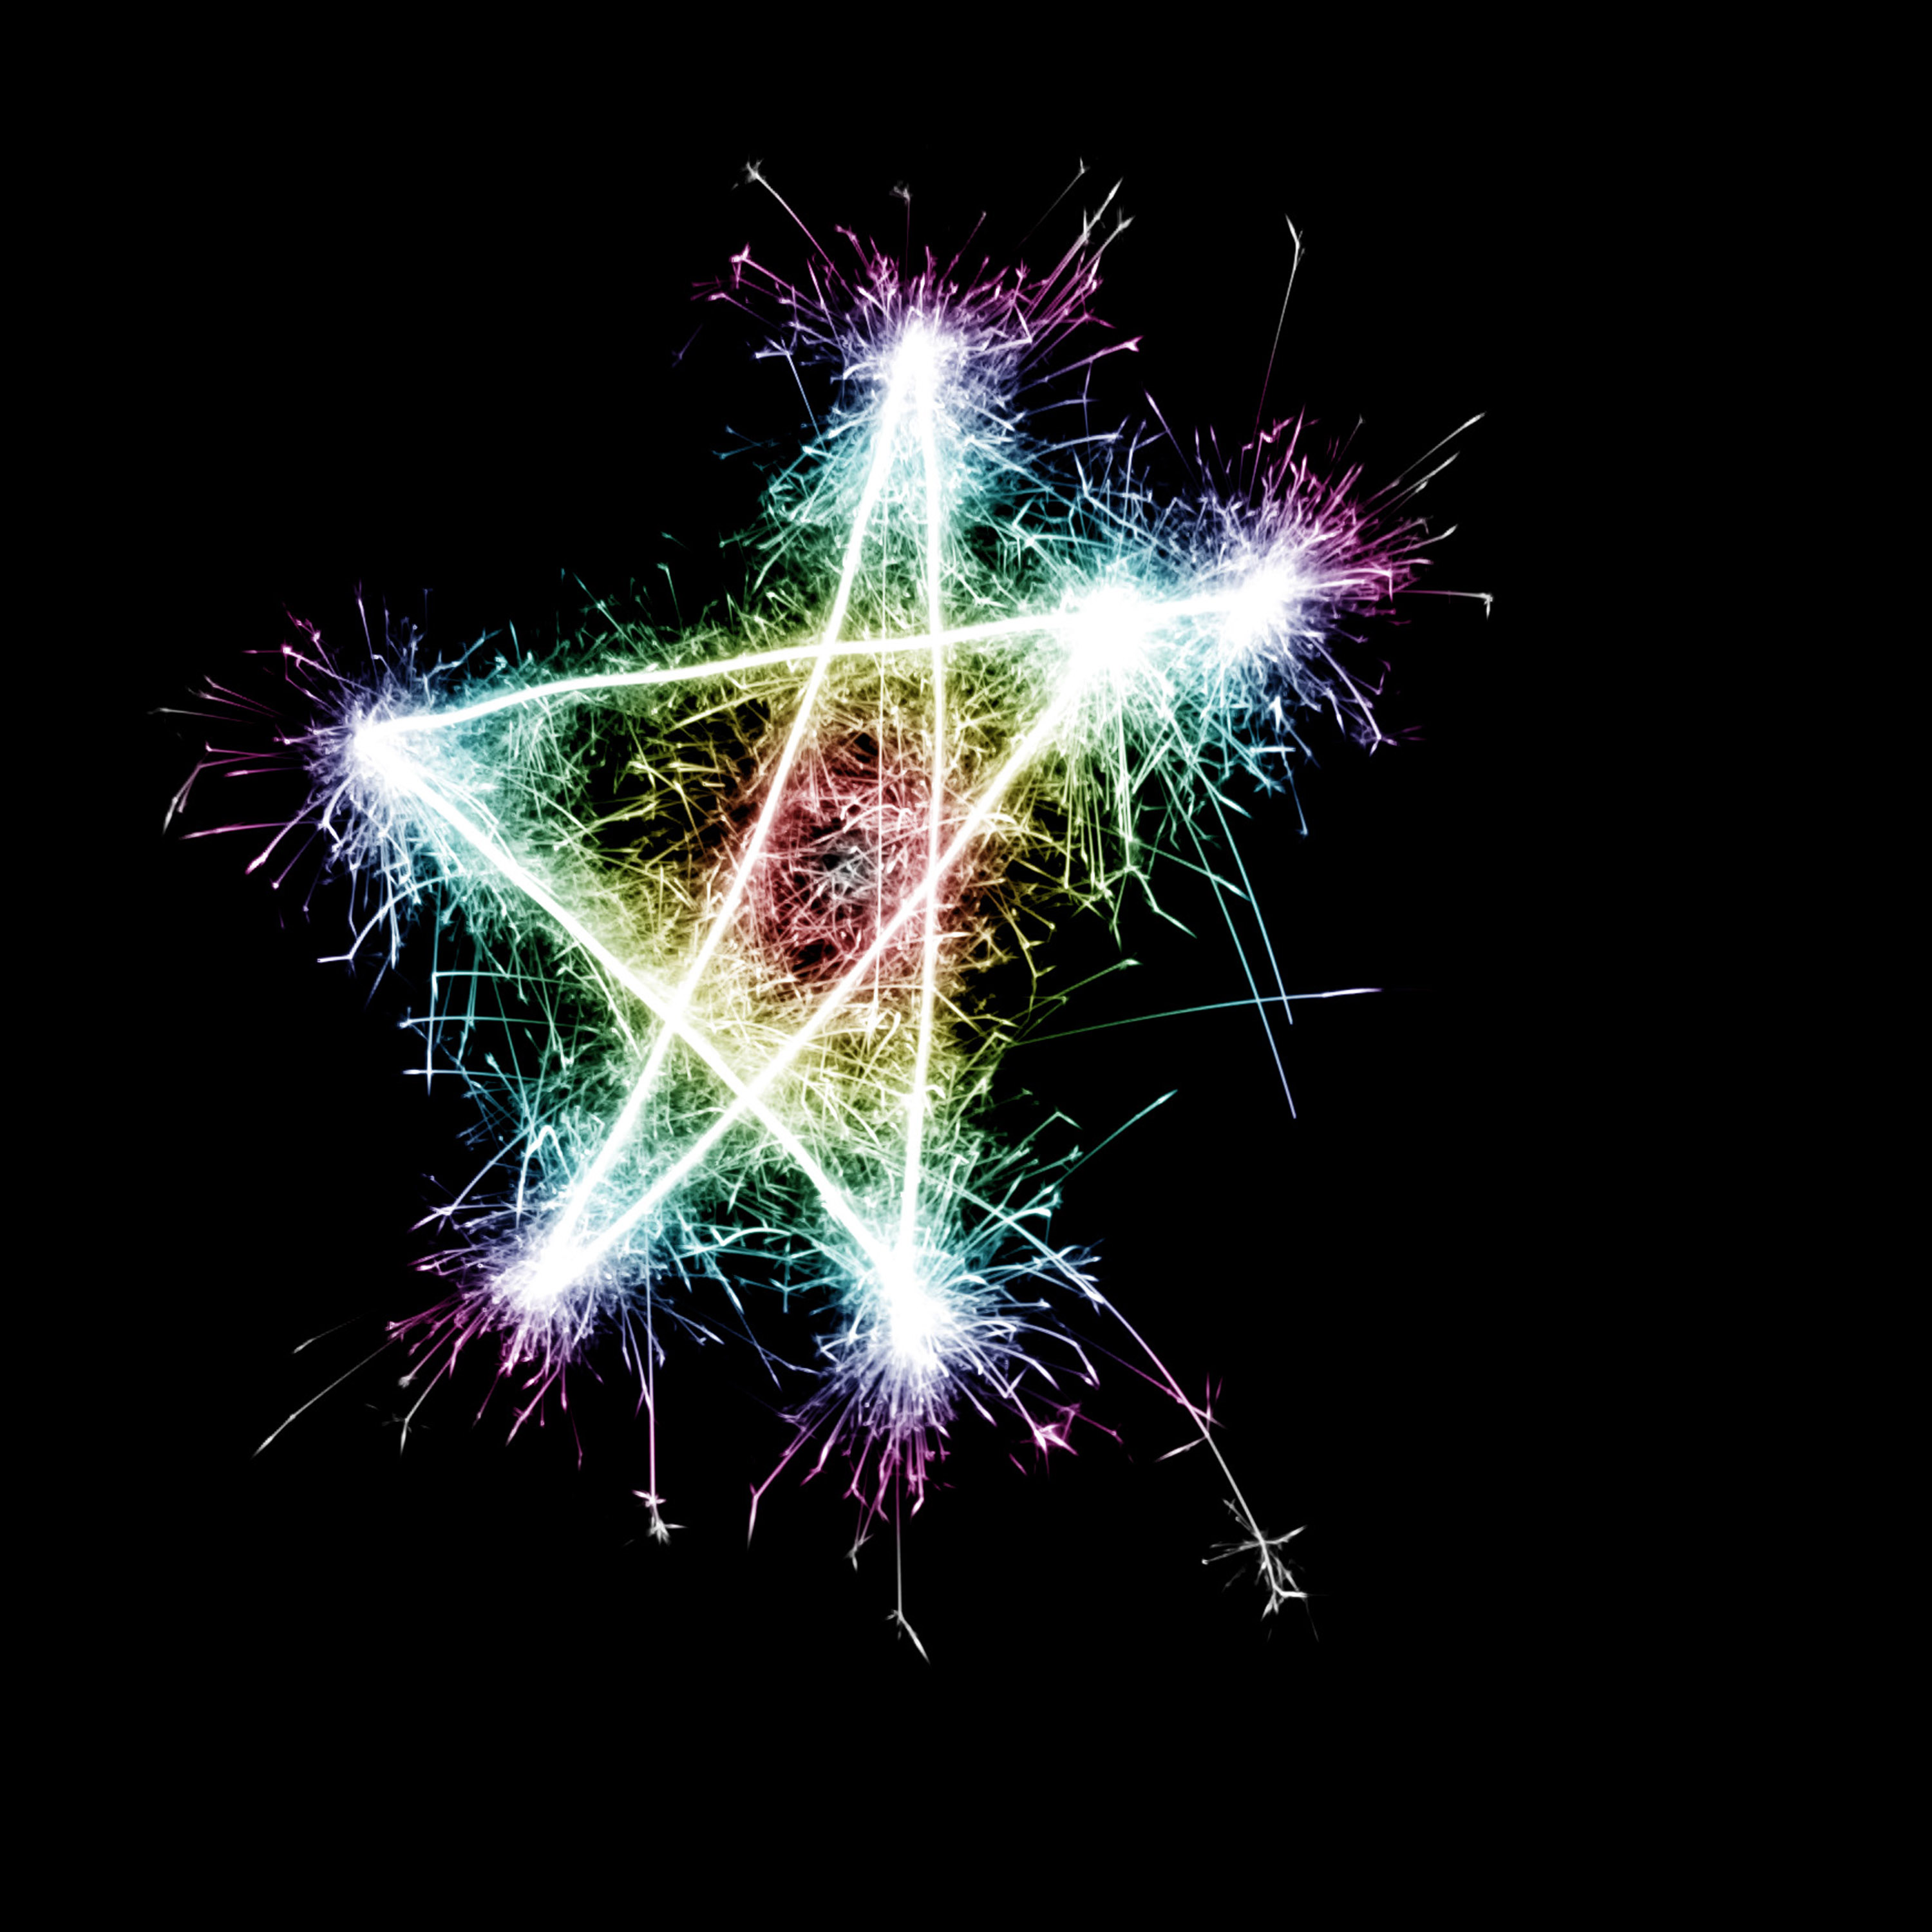 a bright multicolored sparking star symbol on a black background